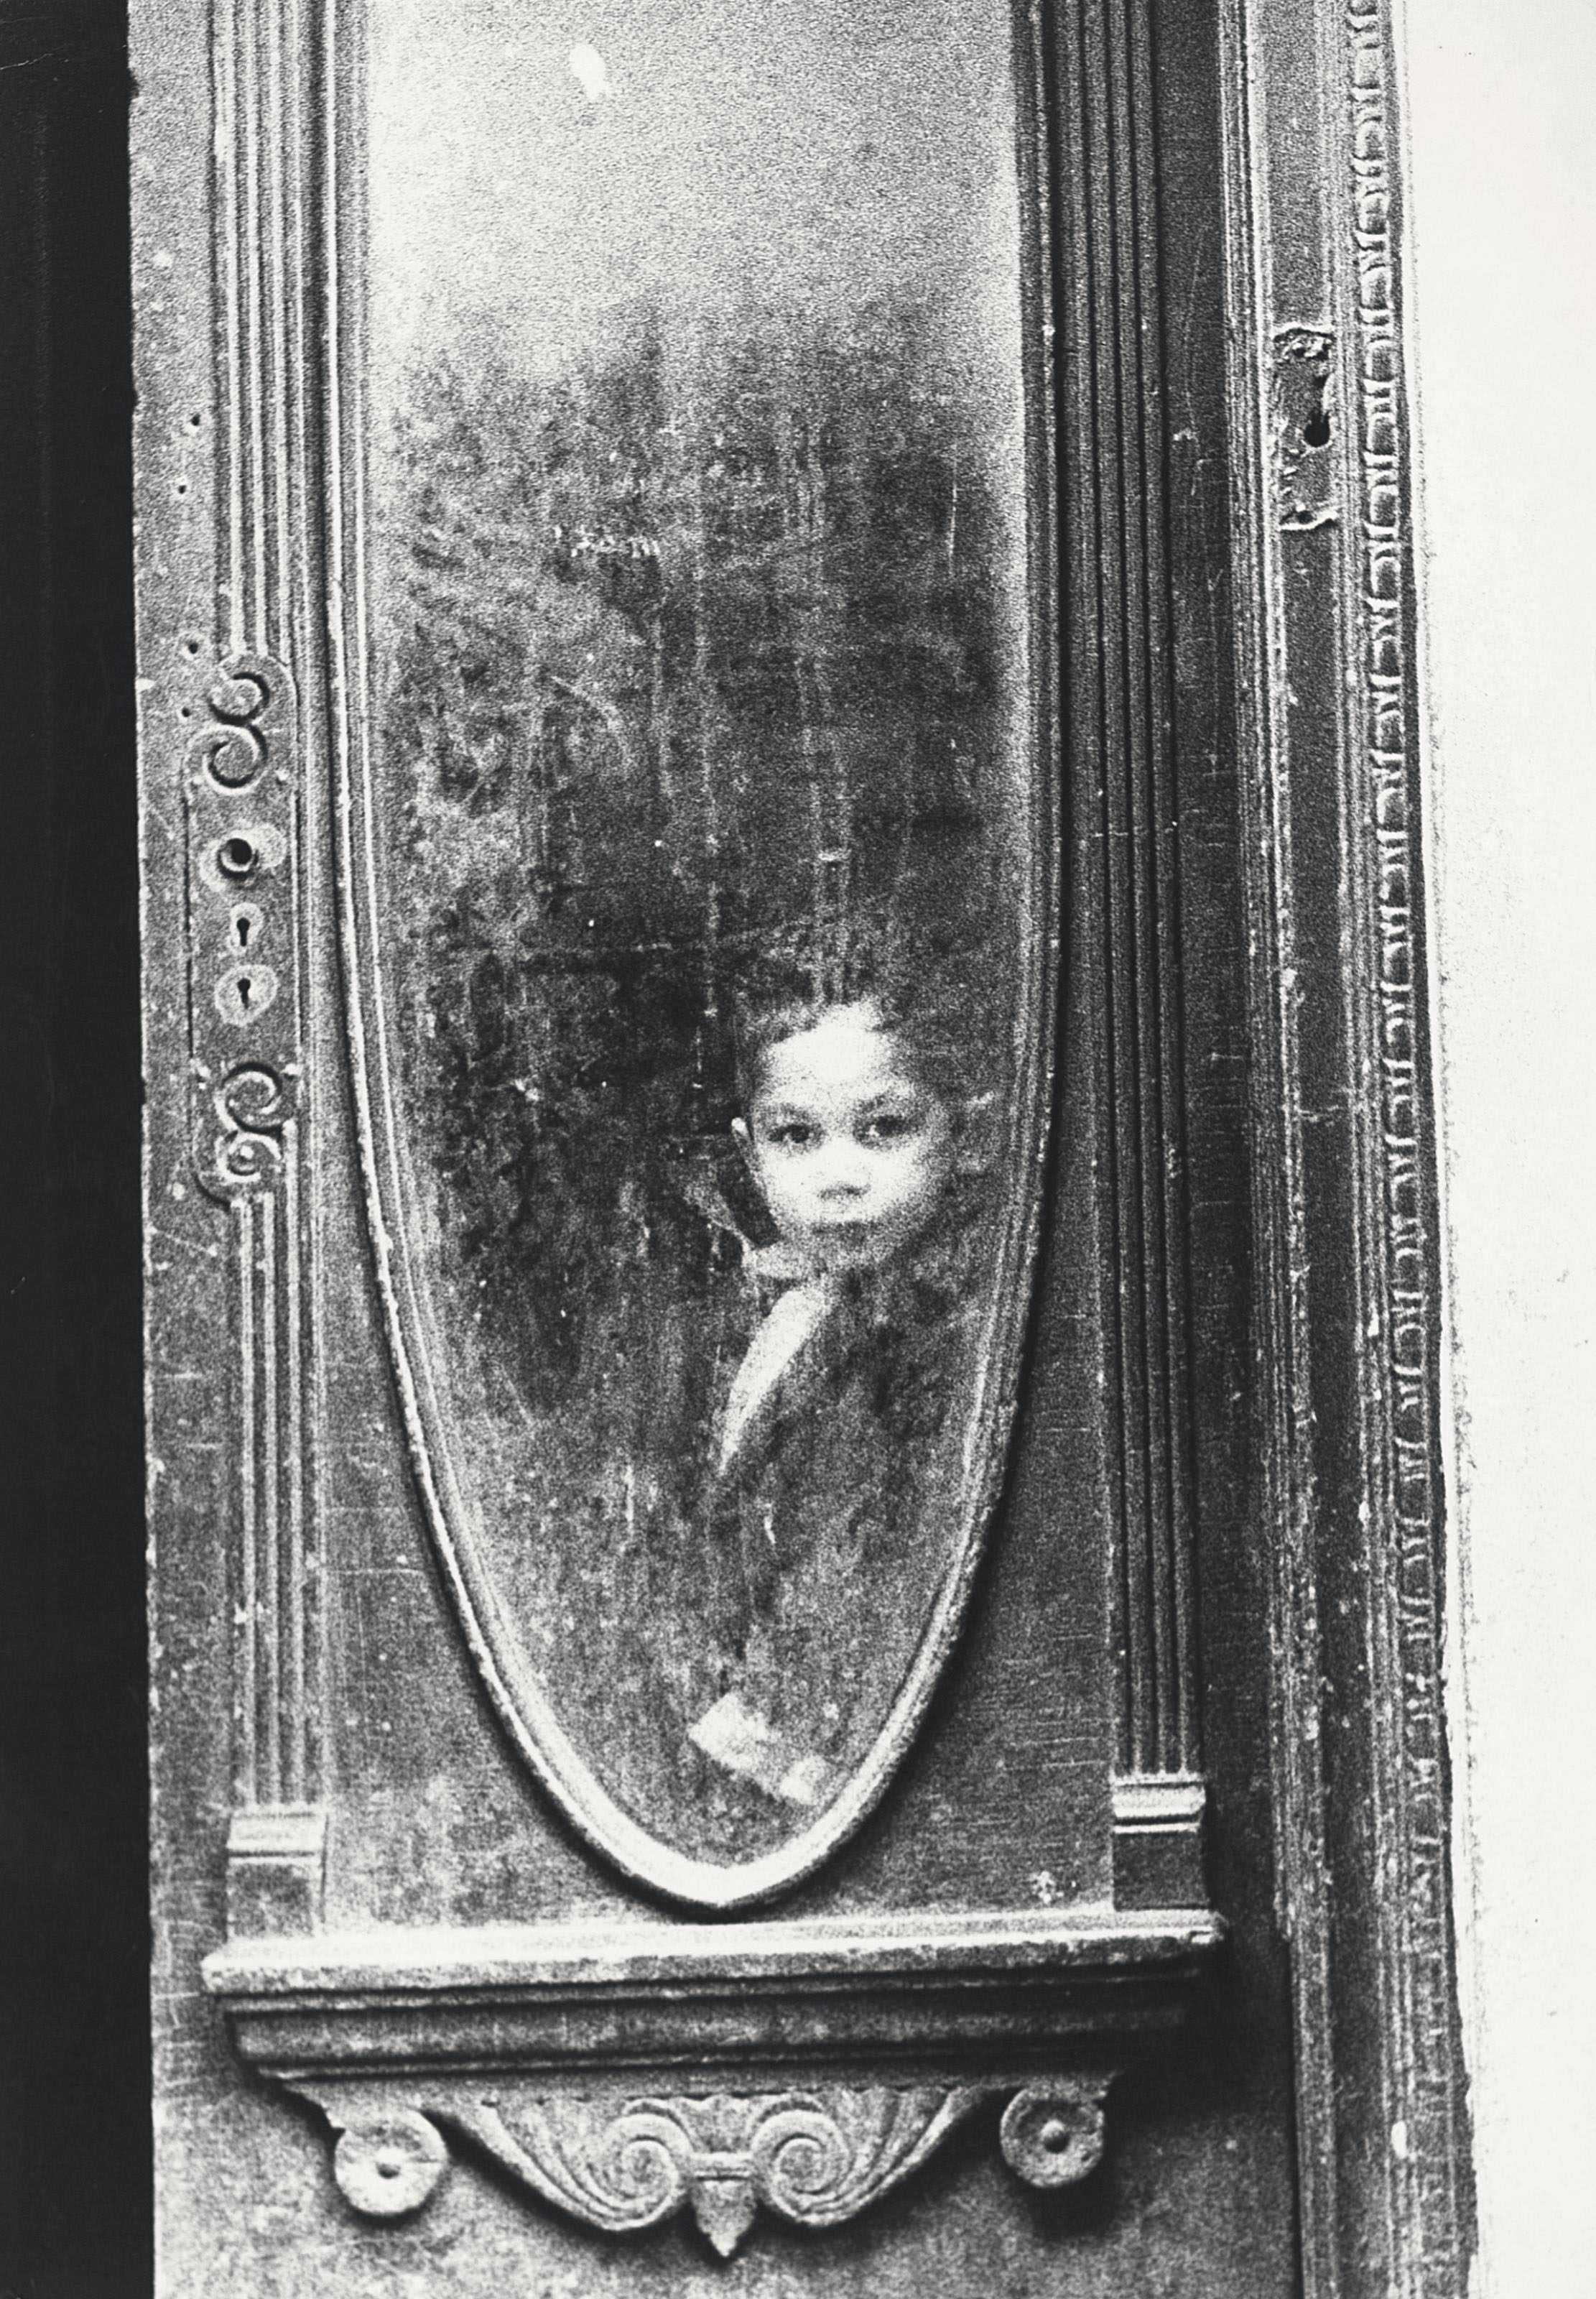 Young boy at the window, New York, 1950s